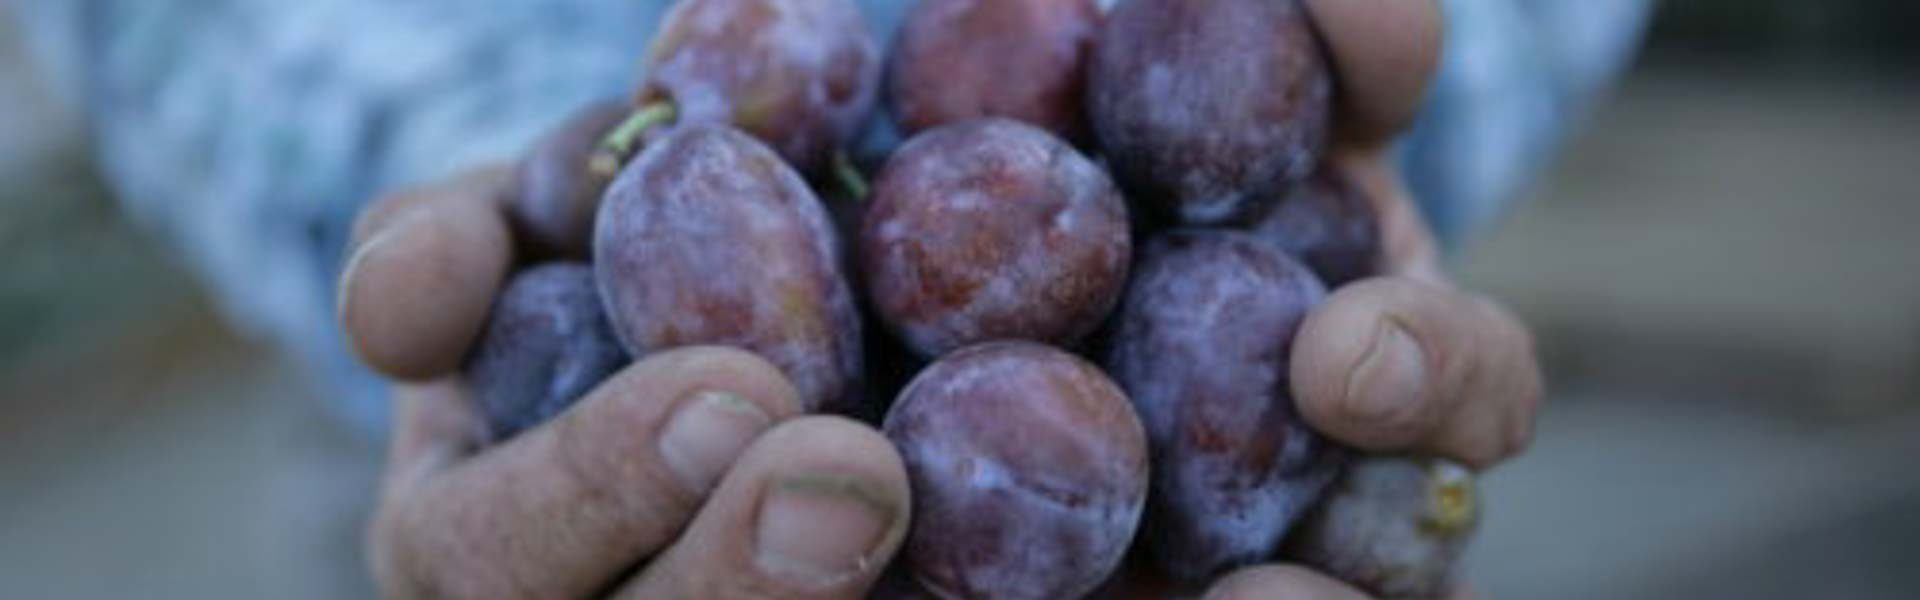 Farmer holding fresh, just-picked Sunsweet prune plums that can be used to make flavorful prune concentrates